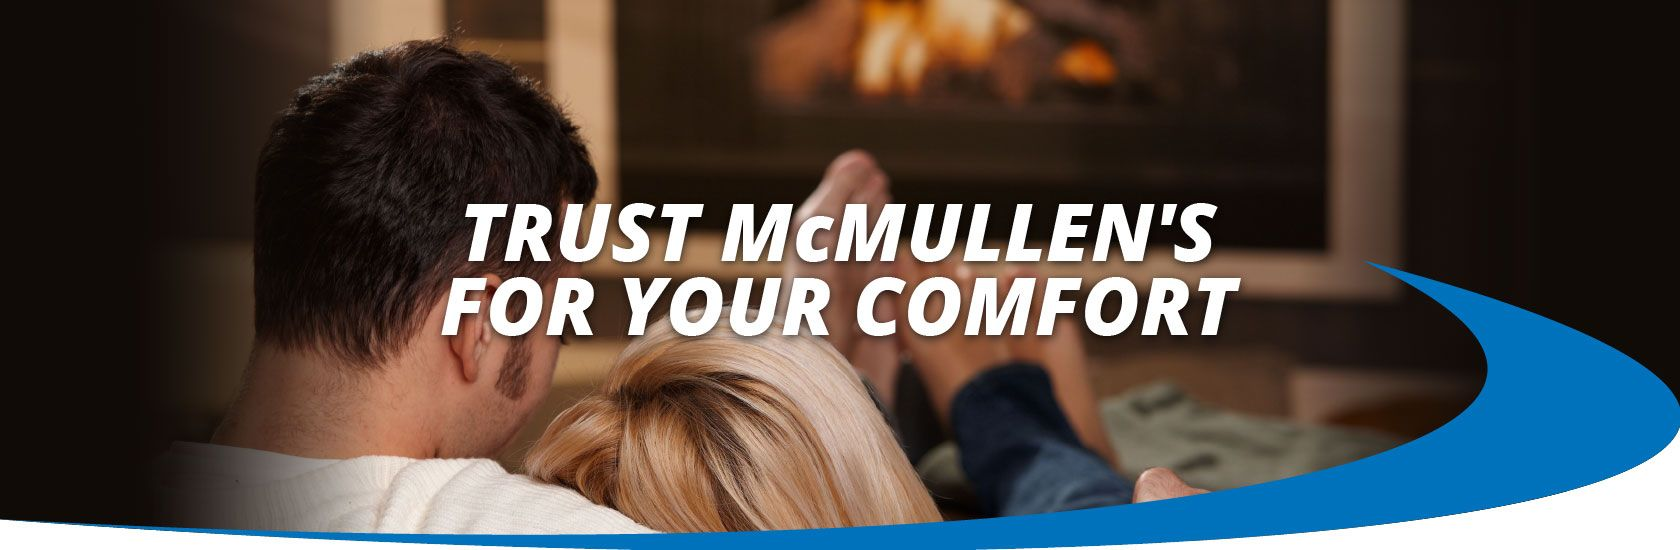 Trust McMullen's for Your Comfort